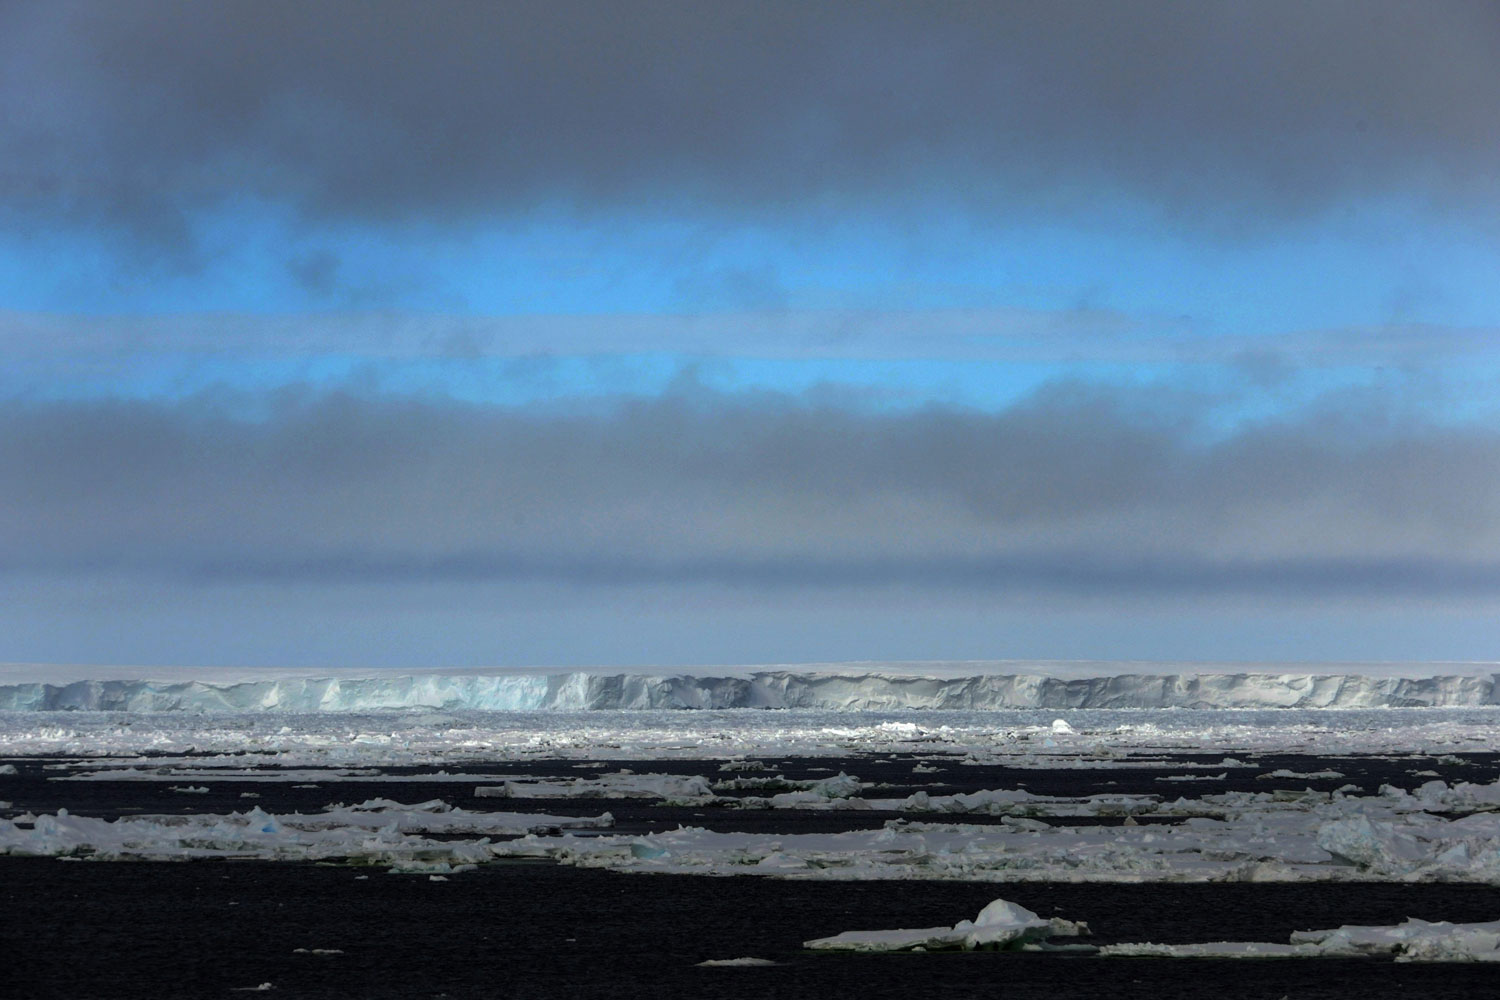 January 11, 2012. The Mertz Glacier near Commonwealth Bay in Antarctica. The 80 km long tongue of the Mertz Glacier was broken off when an iceberg hit the glacier in February 2010.